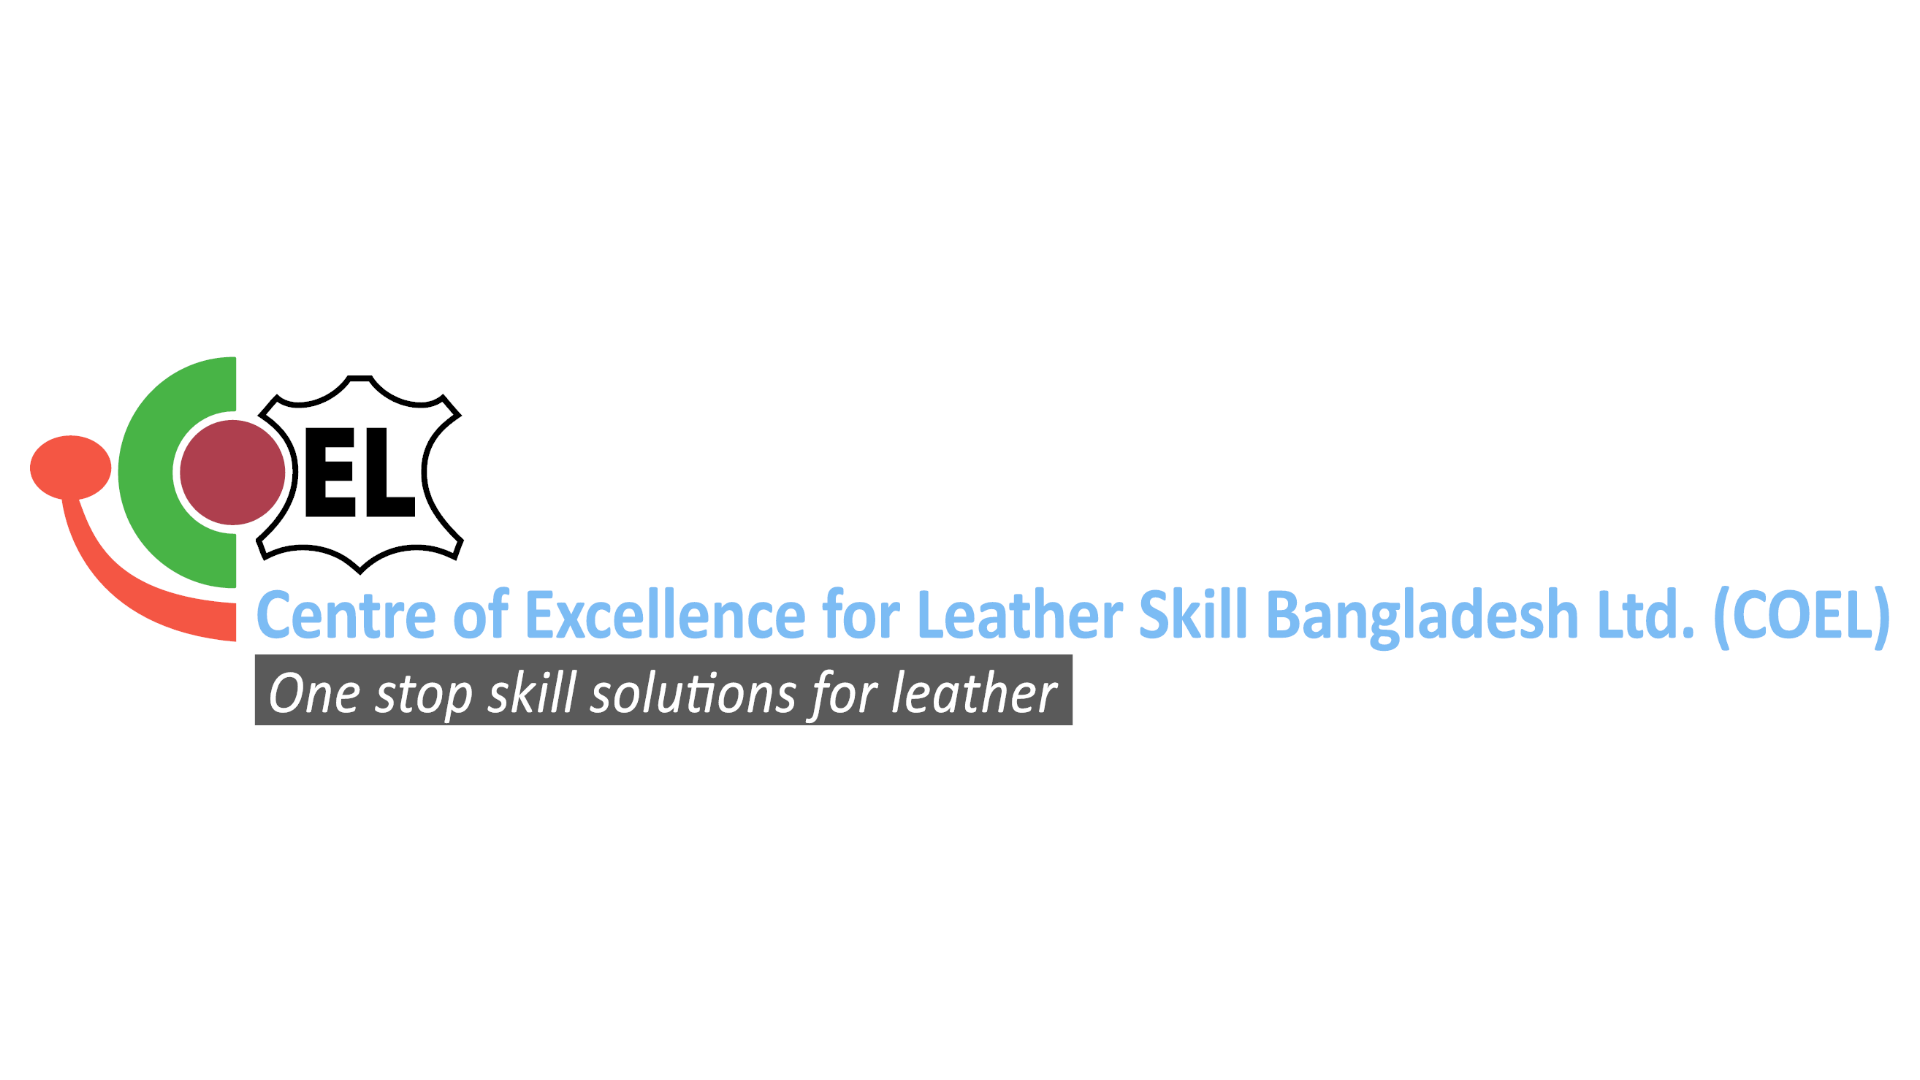 Centre of Excellence For Leather Skill Bangladesh Limited (COEL)